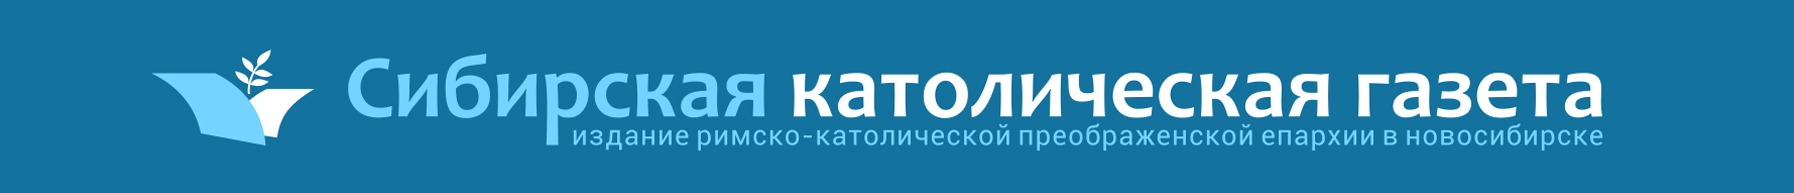 """Сибирская католическая газета"""